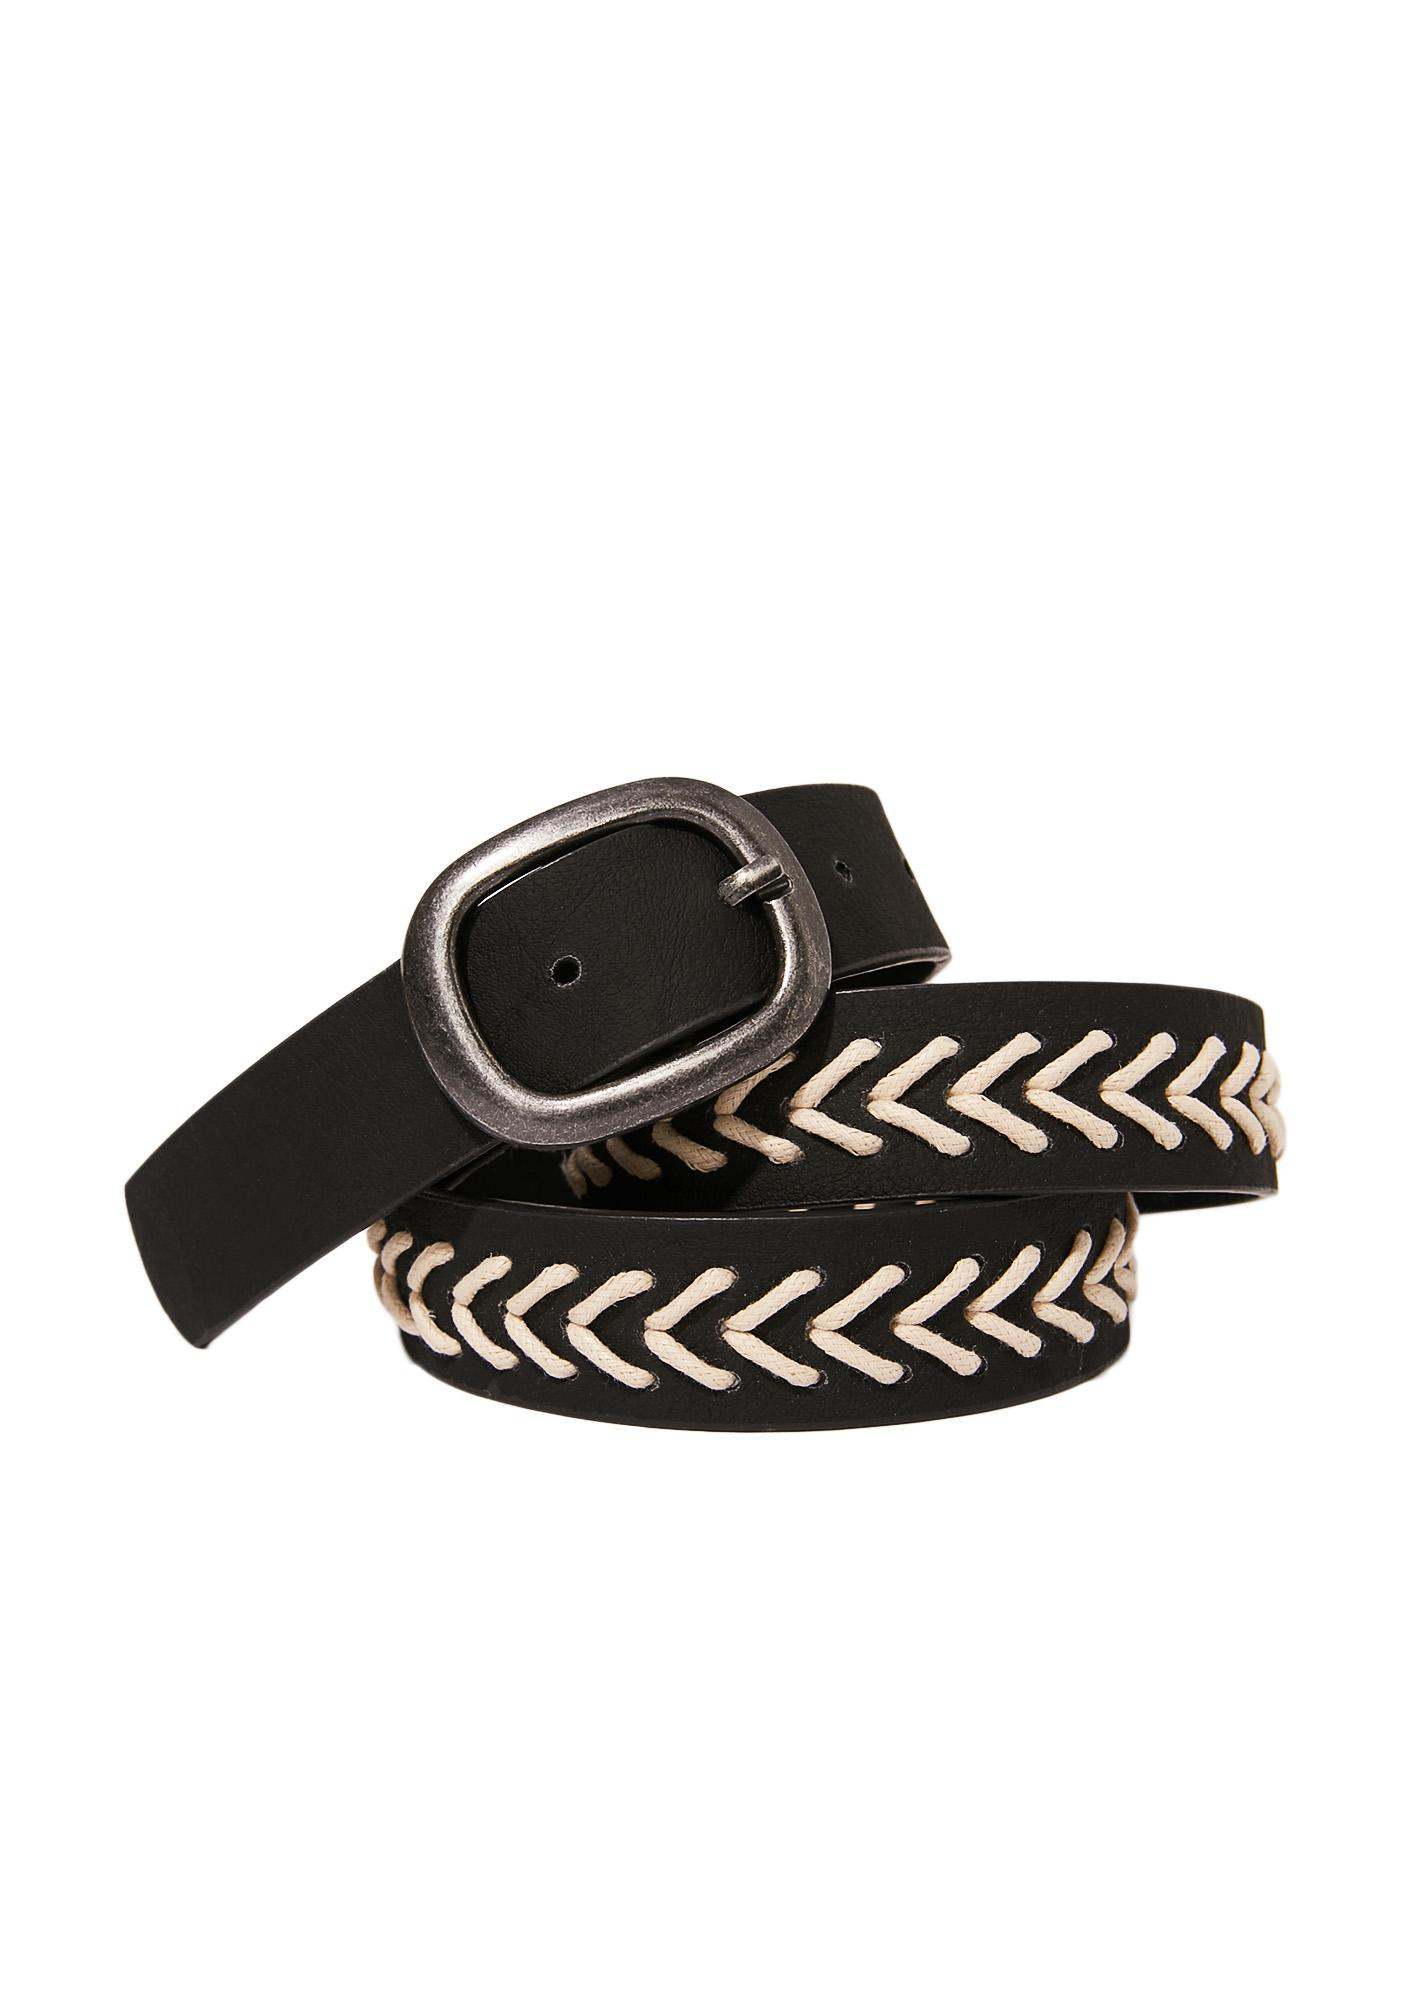 Dark Earthenware Woven Belt